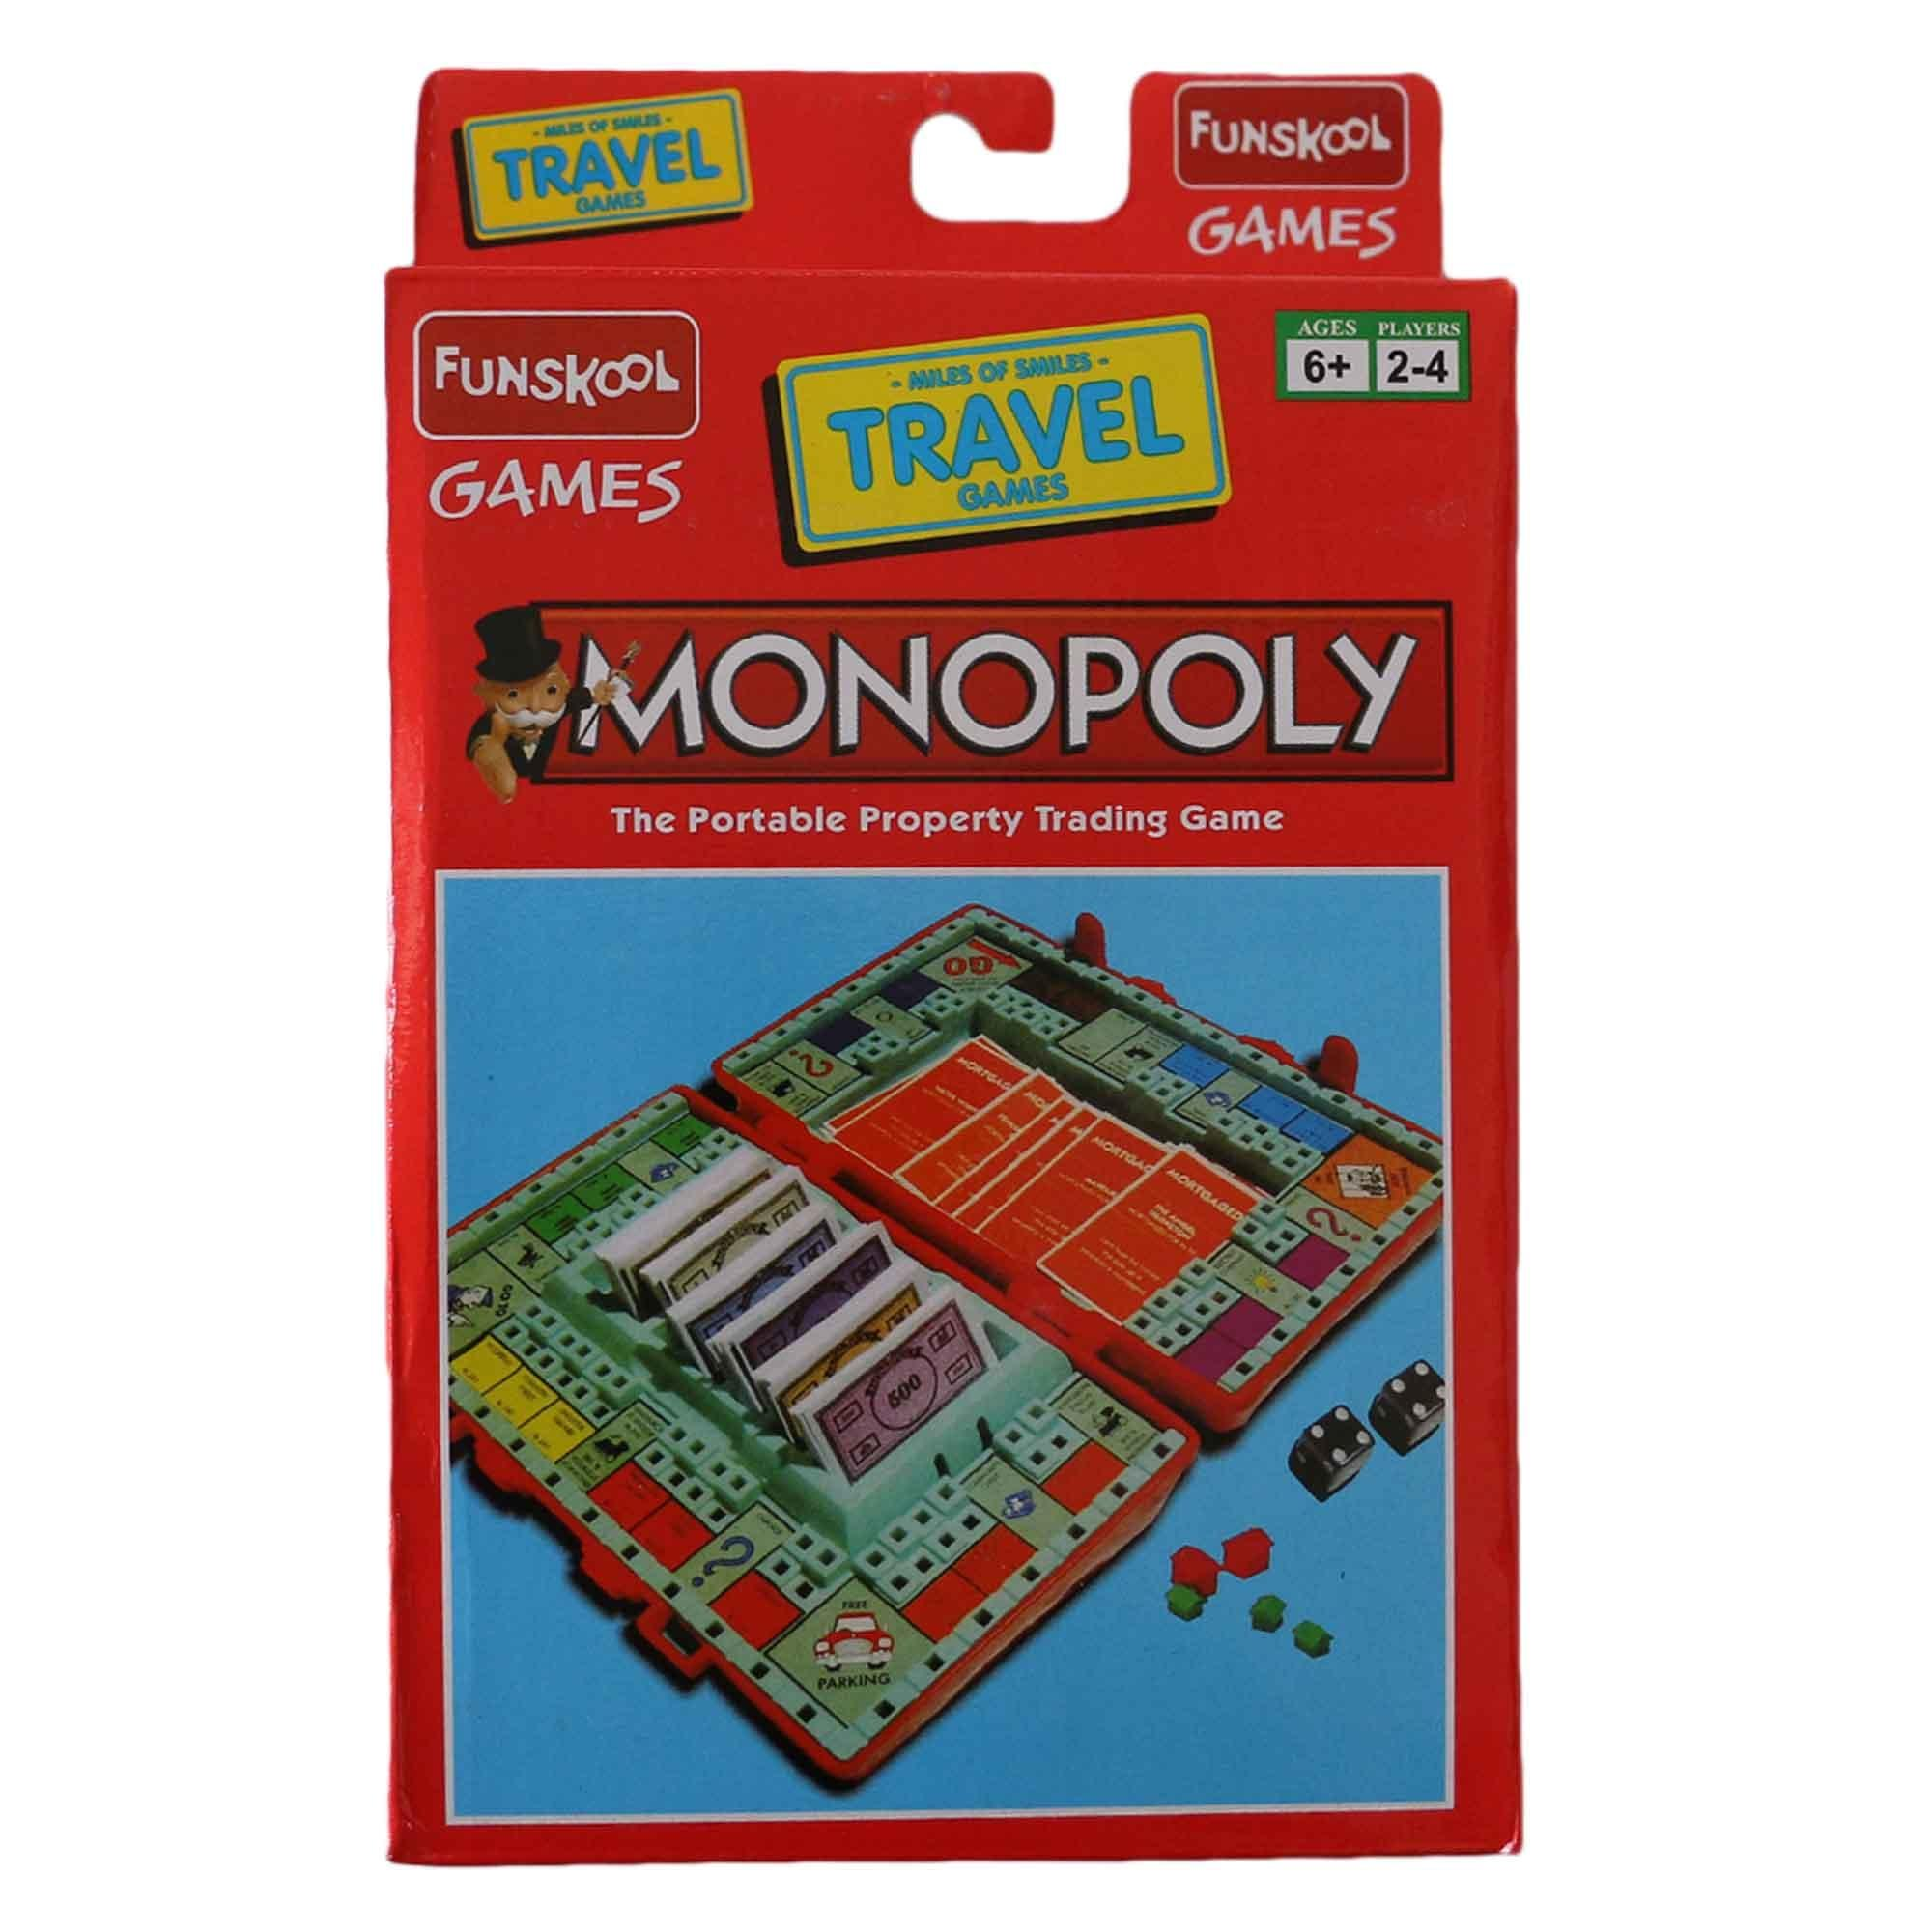 Board Games Buy At Best Price In Nepal Circuit Funskool Monopoly The Portable Trading Game Multicolored